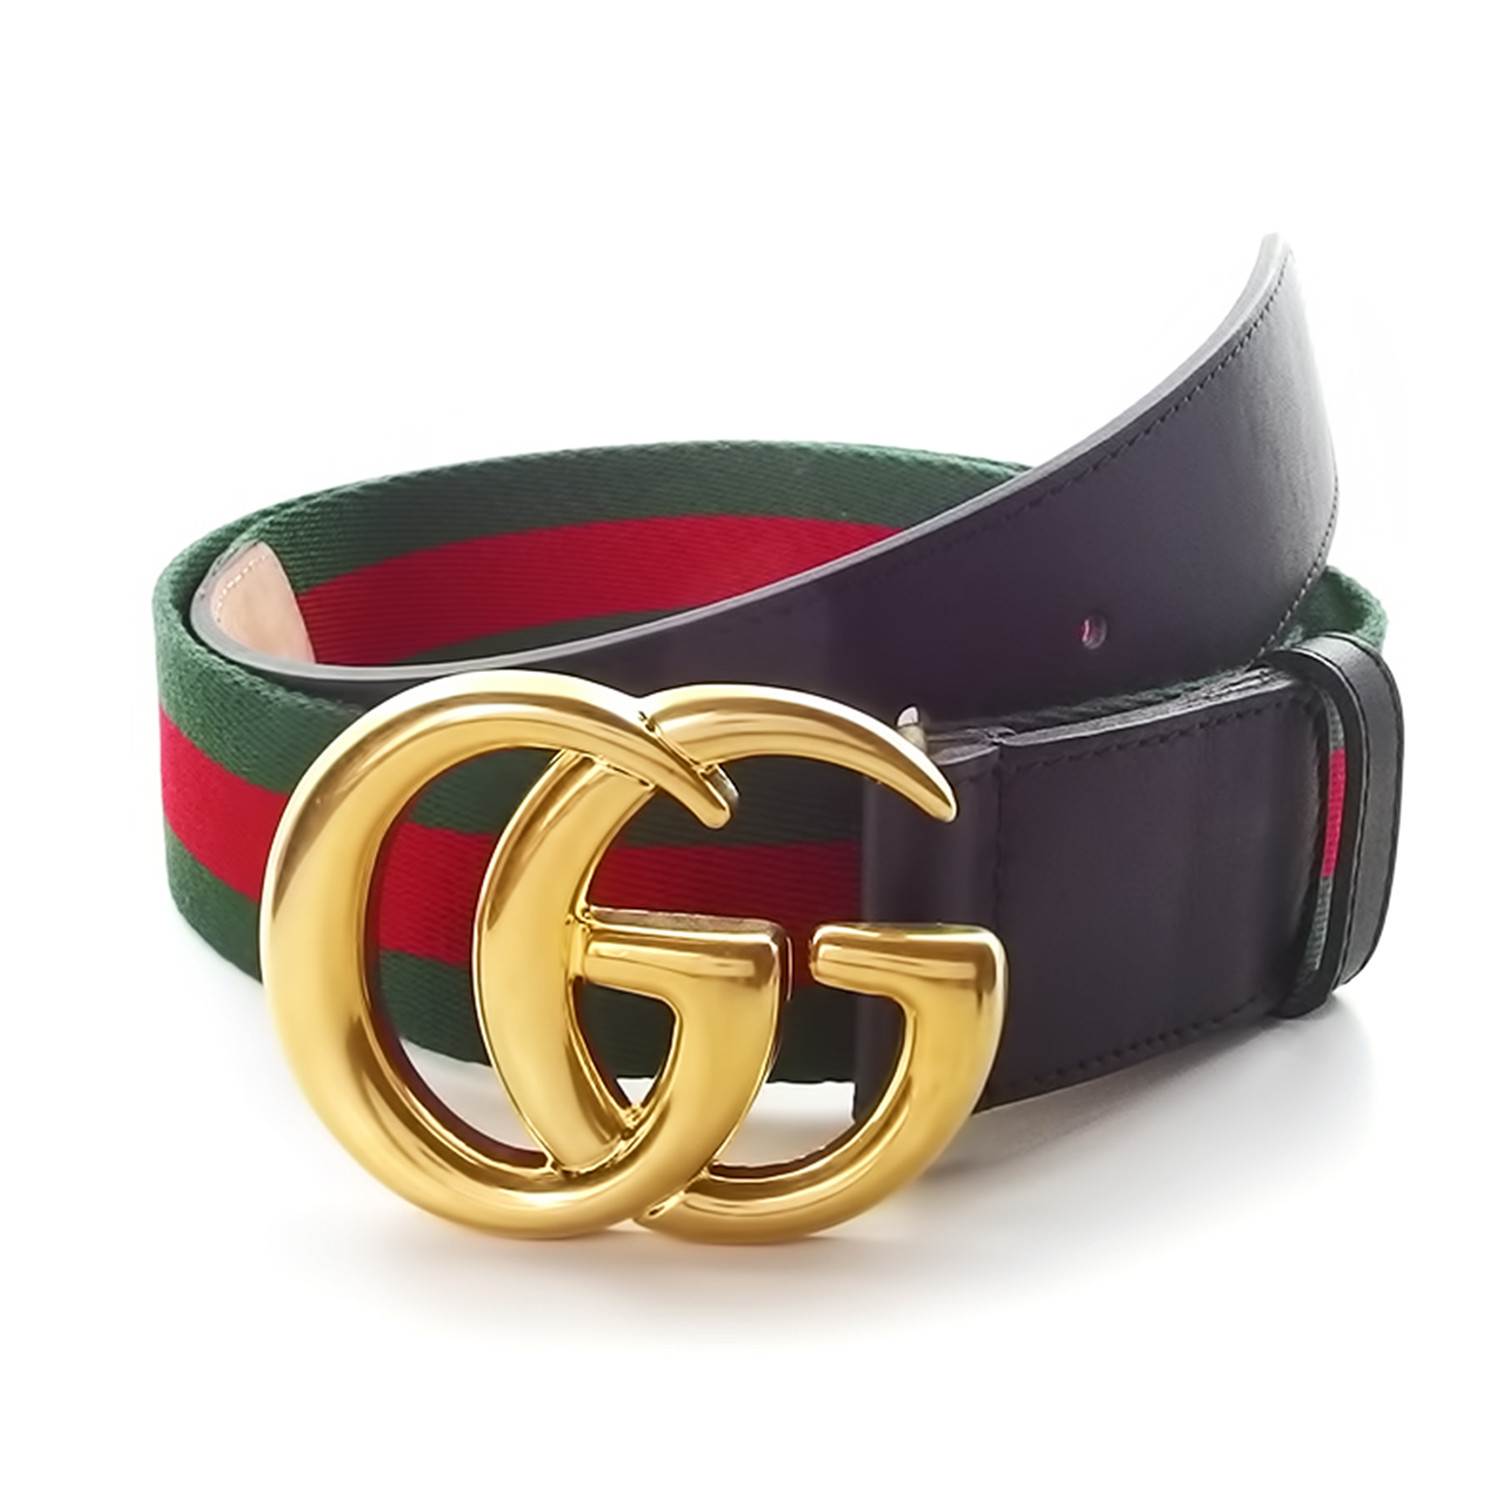 contoured gg stripe ribbon creased belt green red